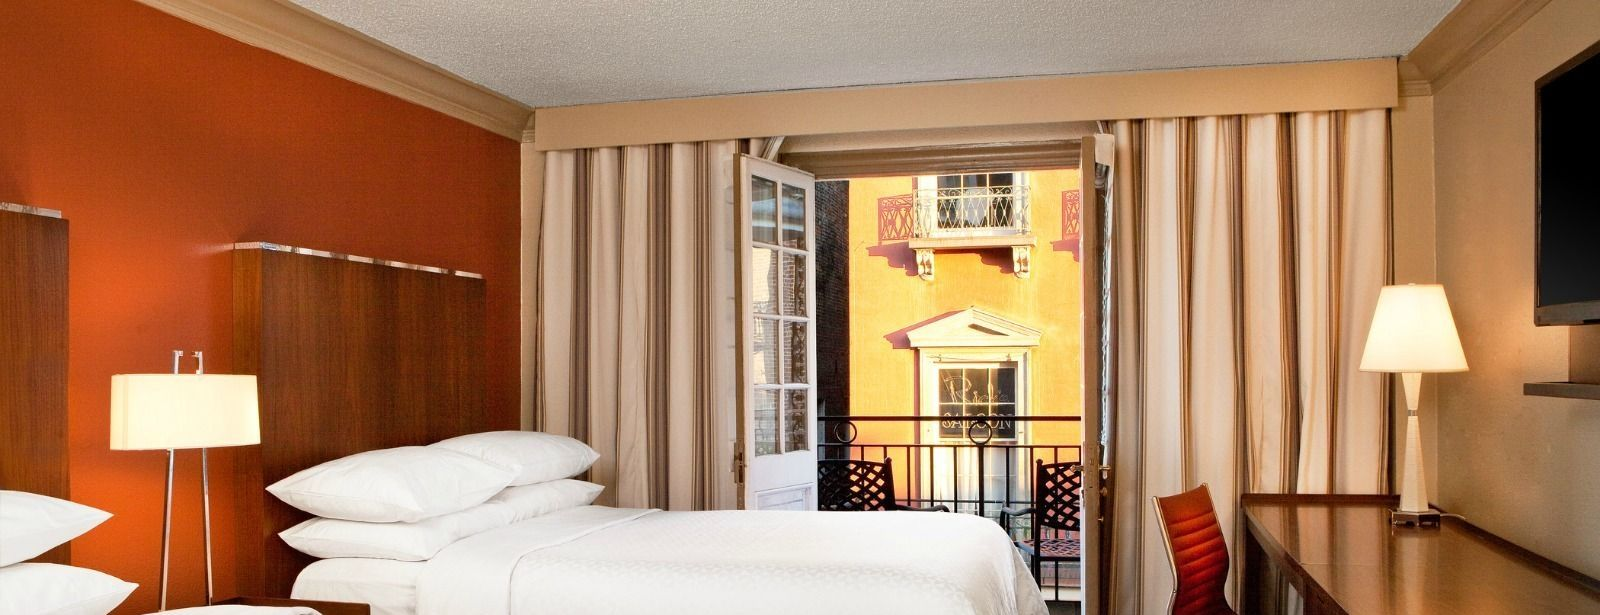 French Quarter Guest Rooms - Deluxe Room